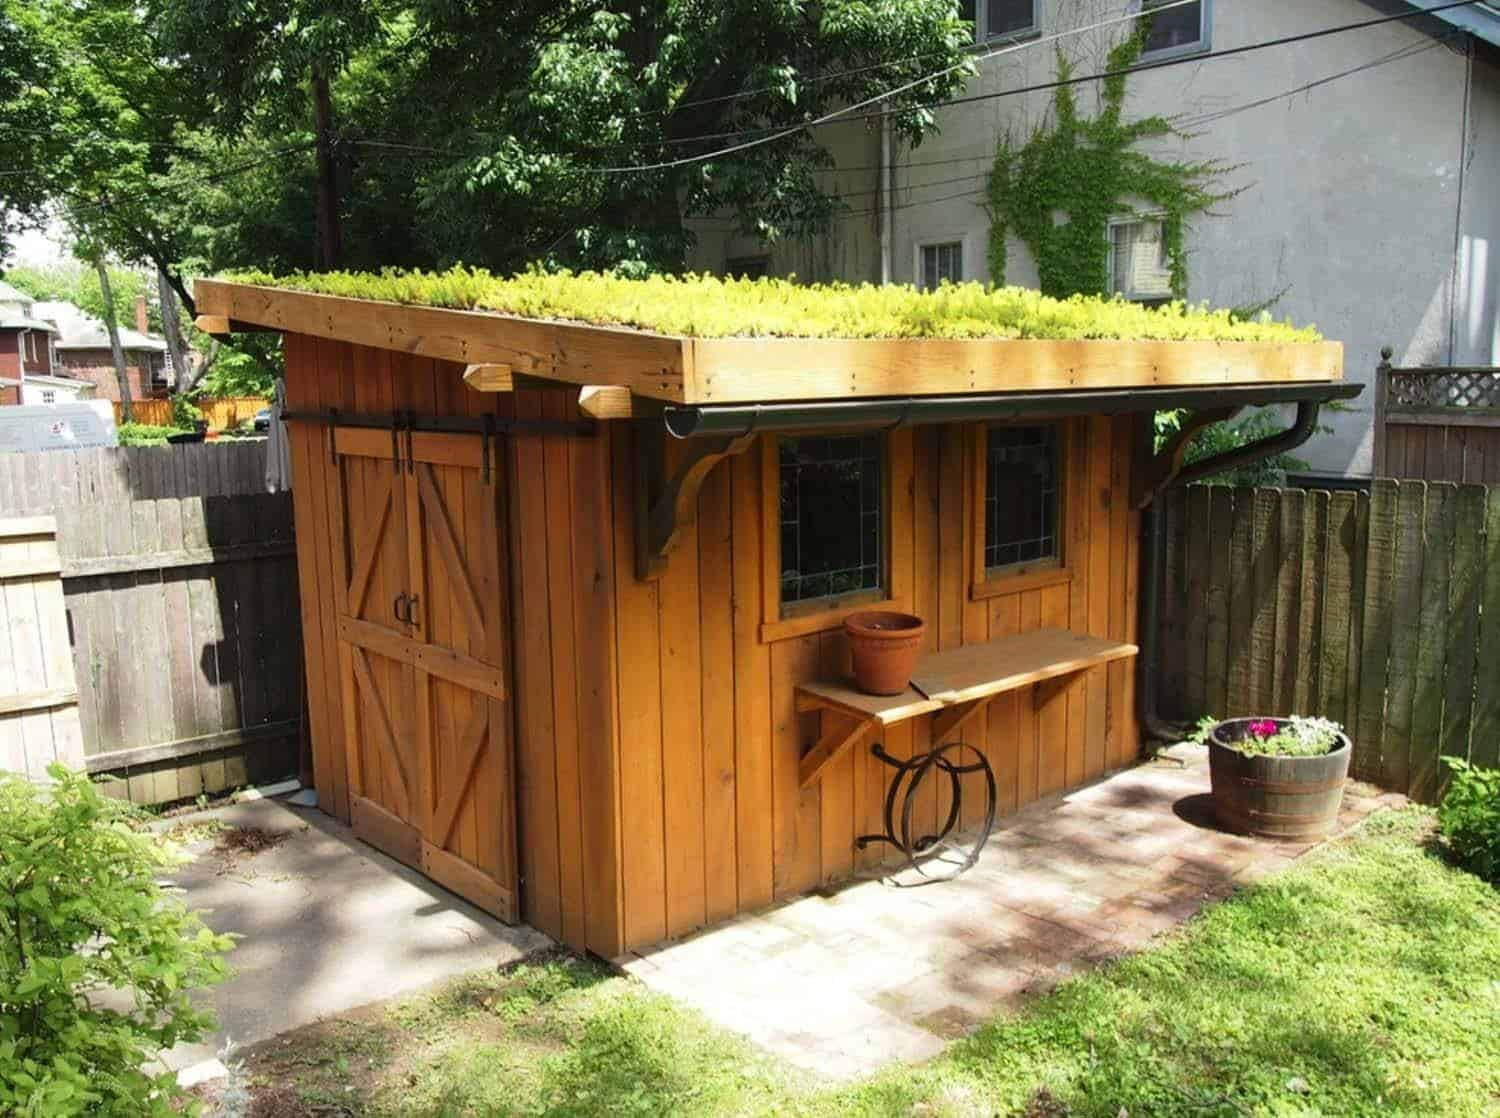 Design Schuur 40 Simply Amazing Garden Shed Ideas